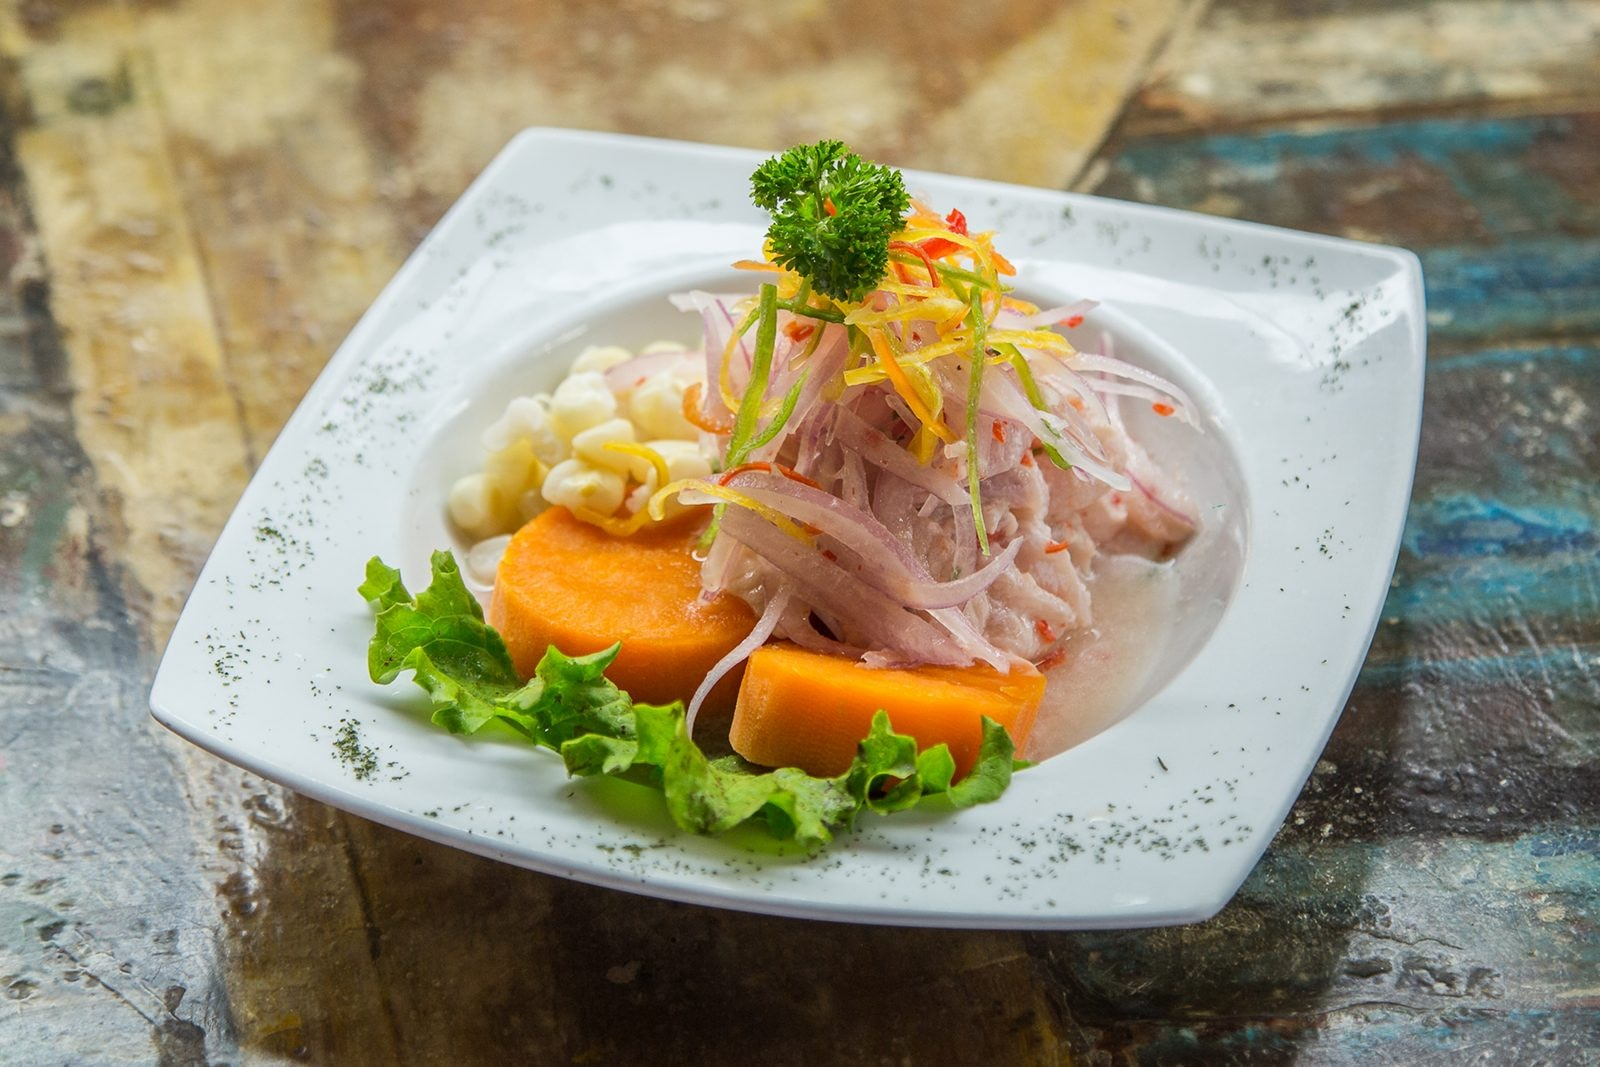 Ceviche prepared with sweet potatoes and vegetables